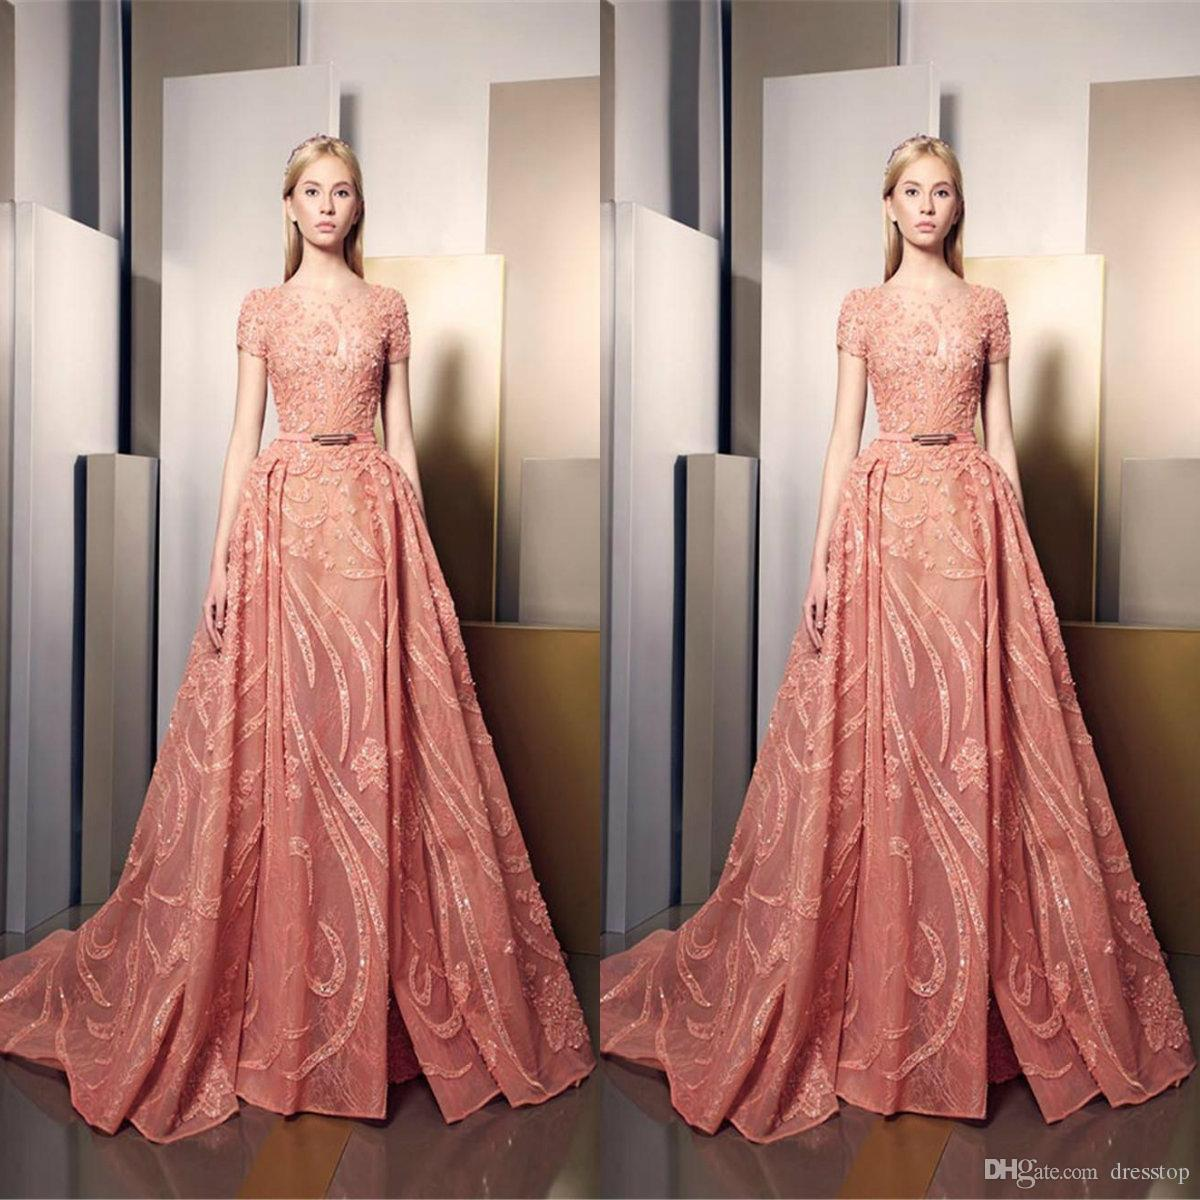 Ziad Nakad Overskirt Prom Dresses Long Sheer Jewel Neck Pizzo Abiti formali Paillettes Piano Lunghezza Tulle Appliqued Party Dress For Women